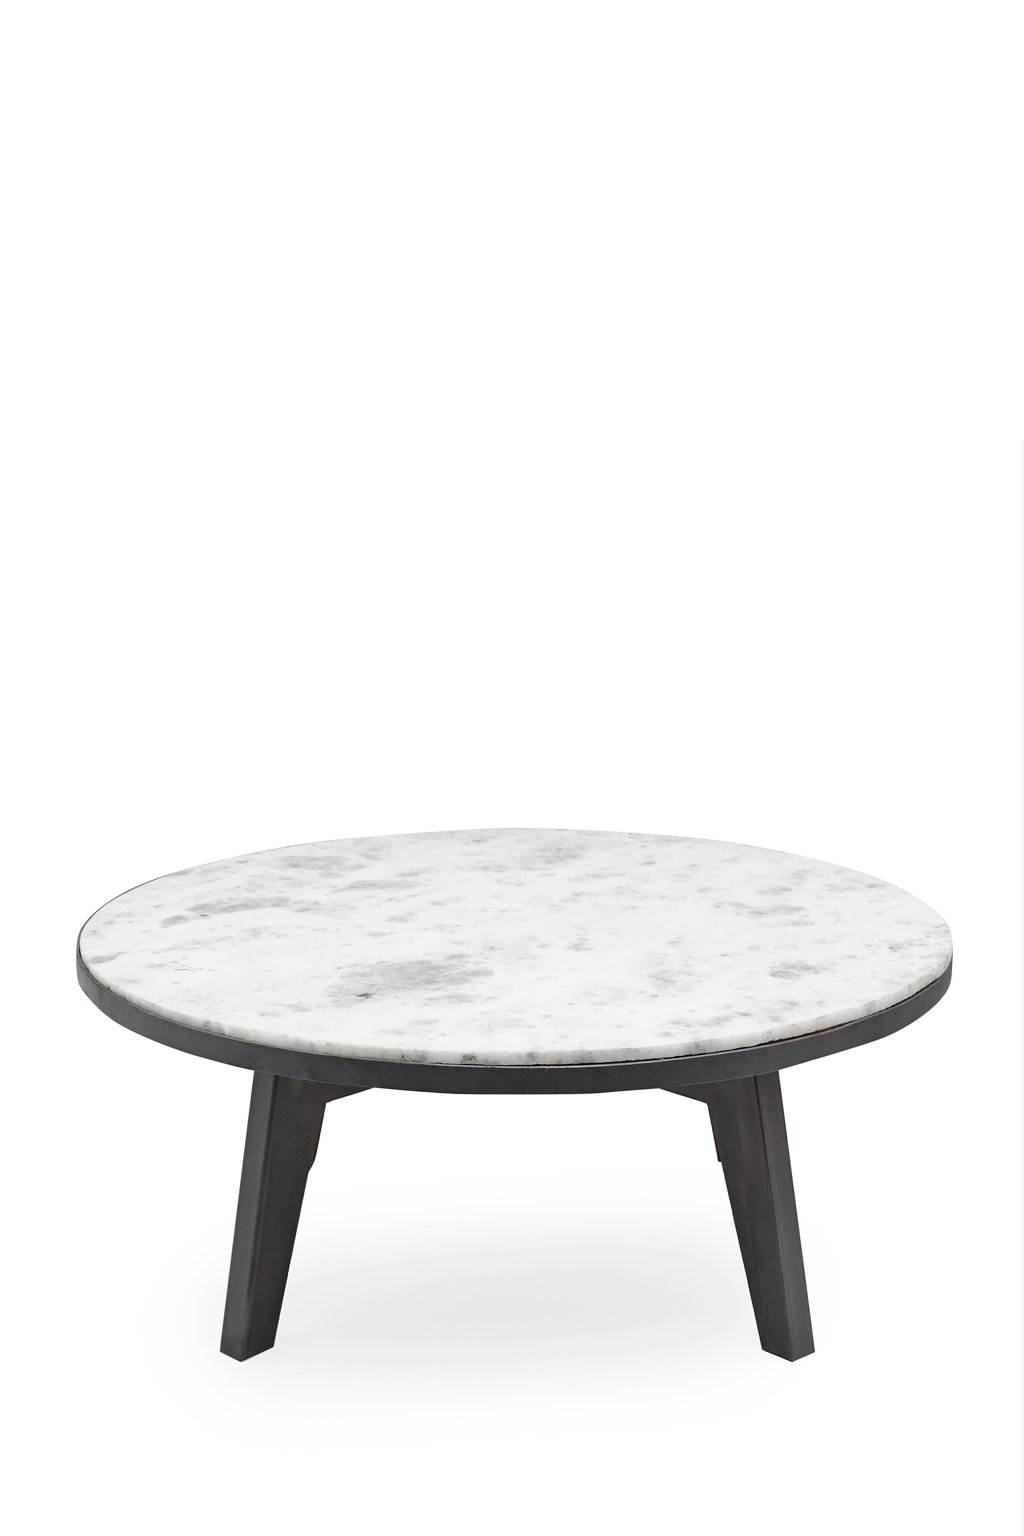 Axis Round Marble Coffee Table. Loading Images... Loading Images.